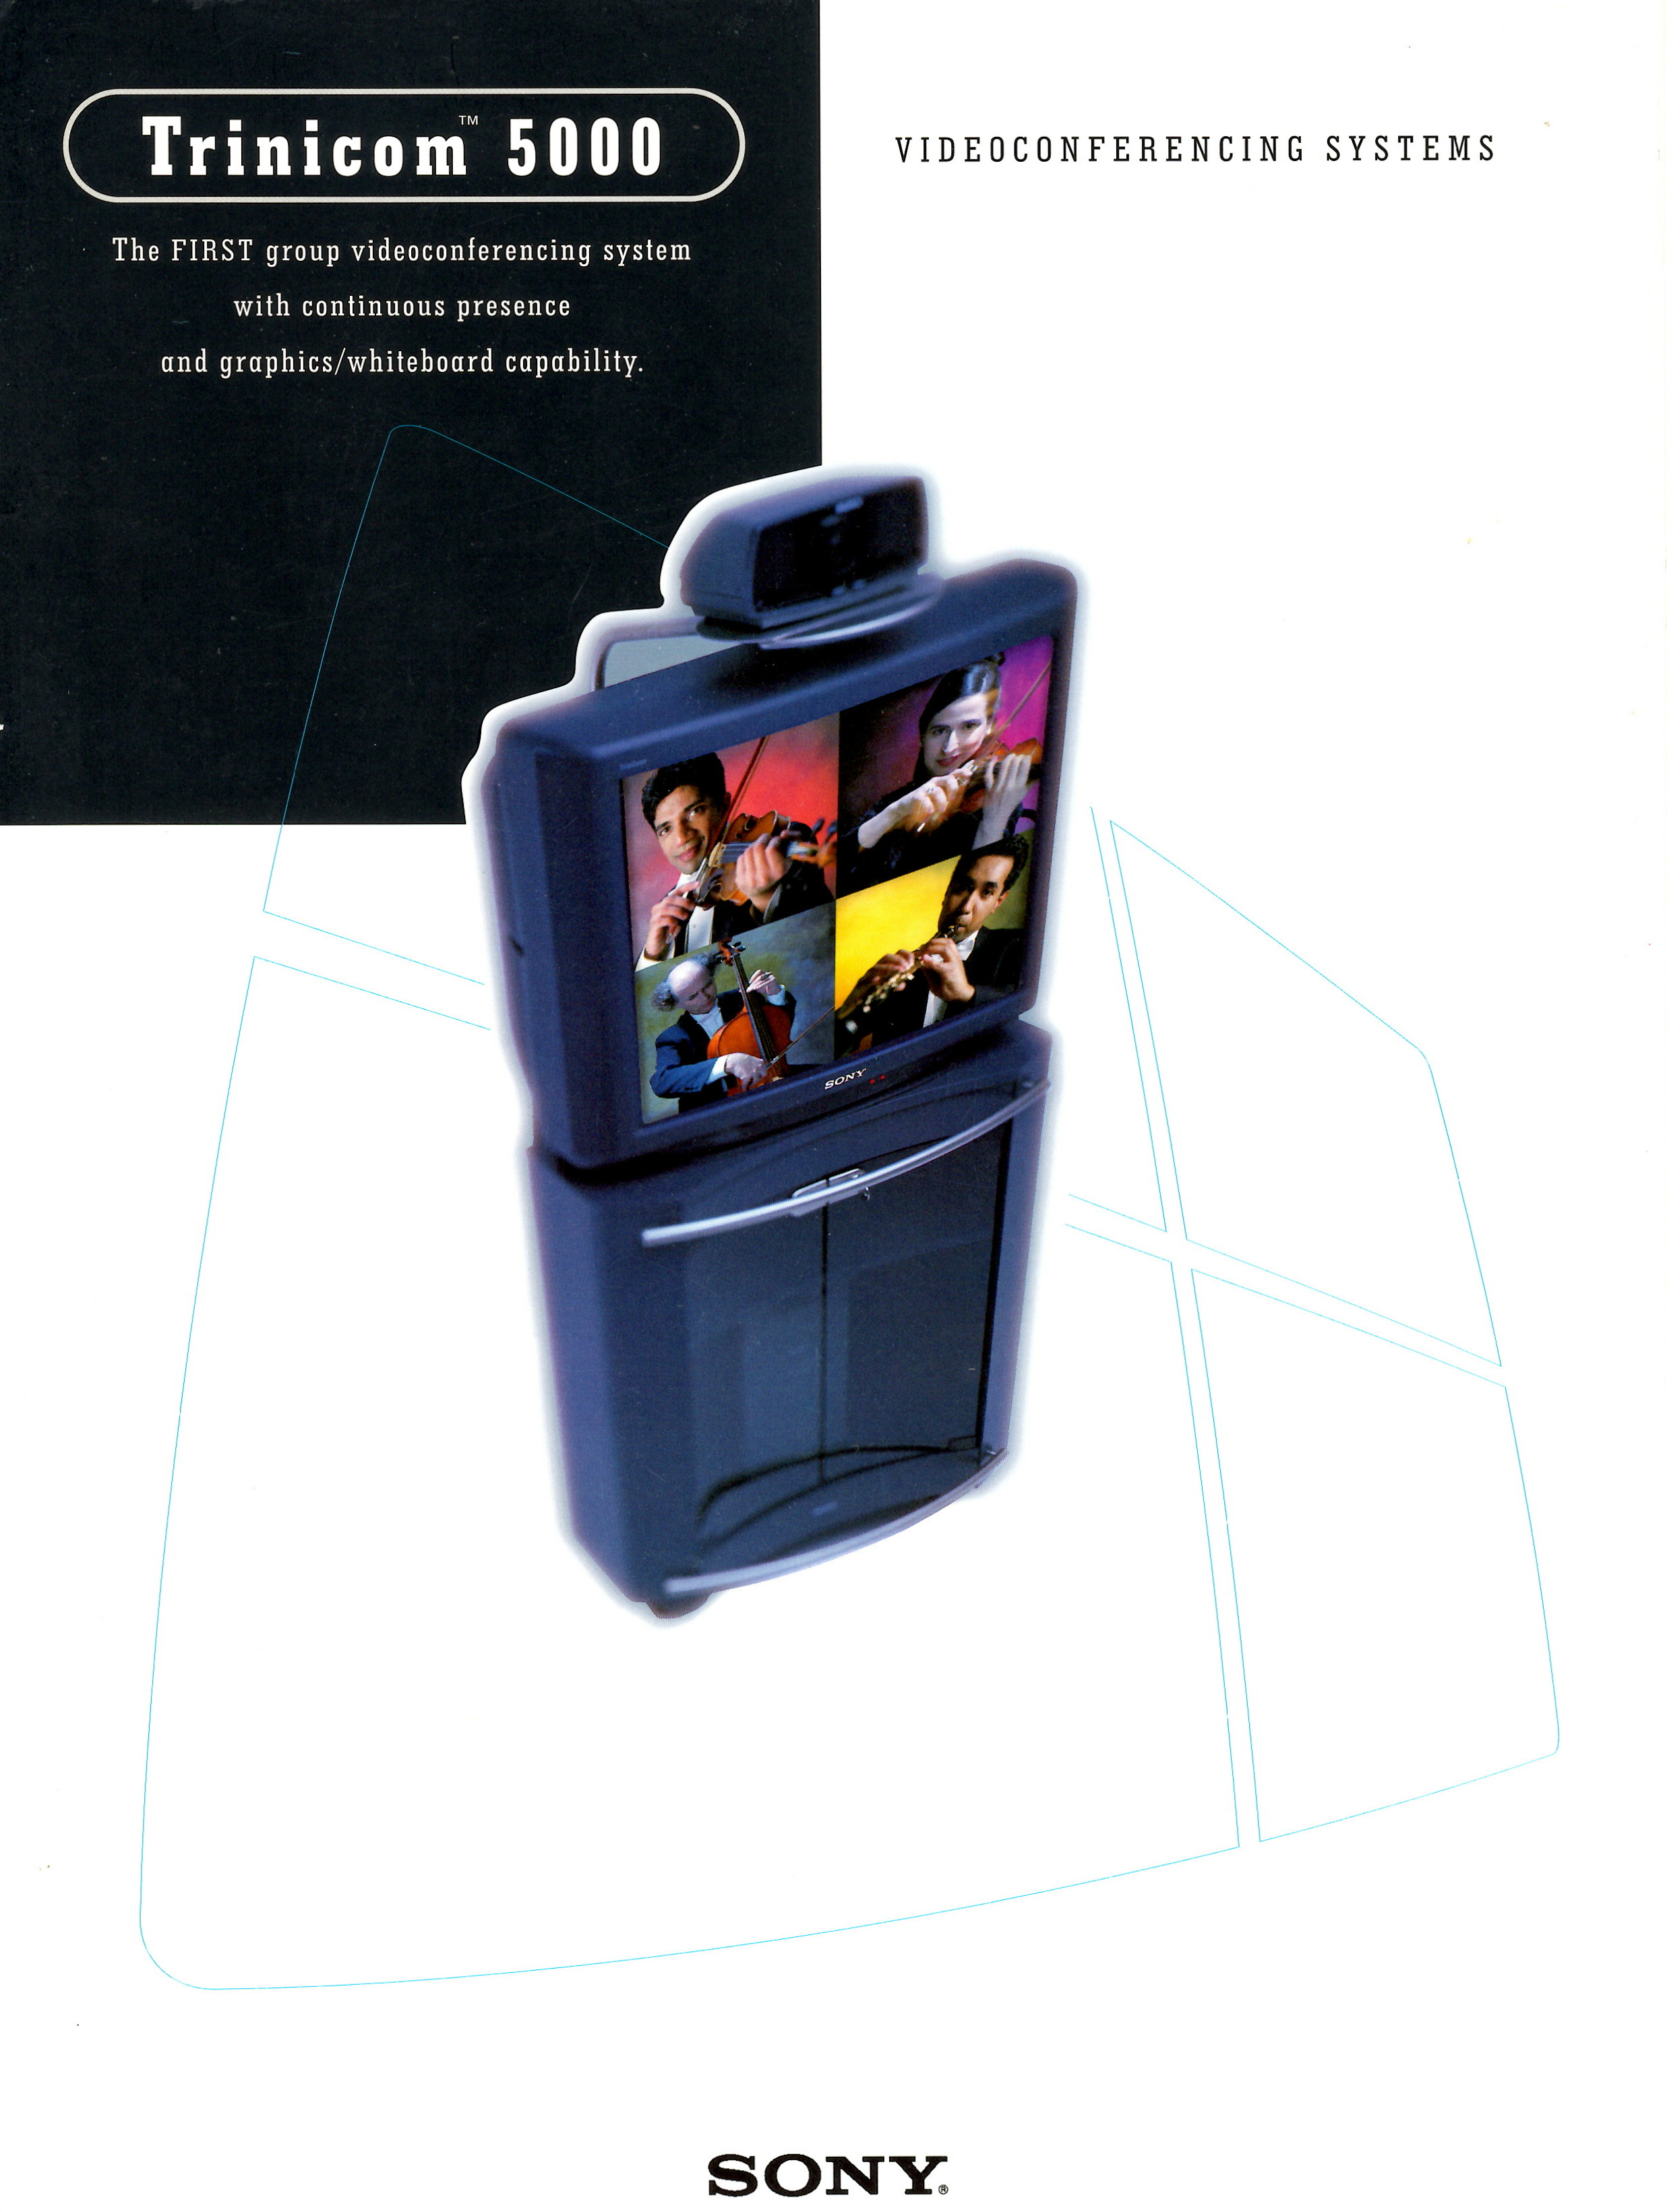 Sony Europe - Trinicom 5000 Brochure